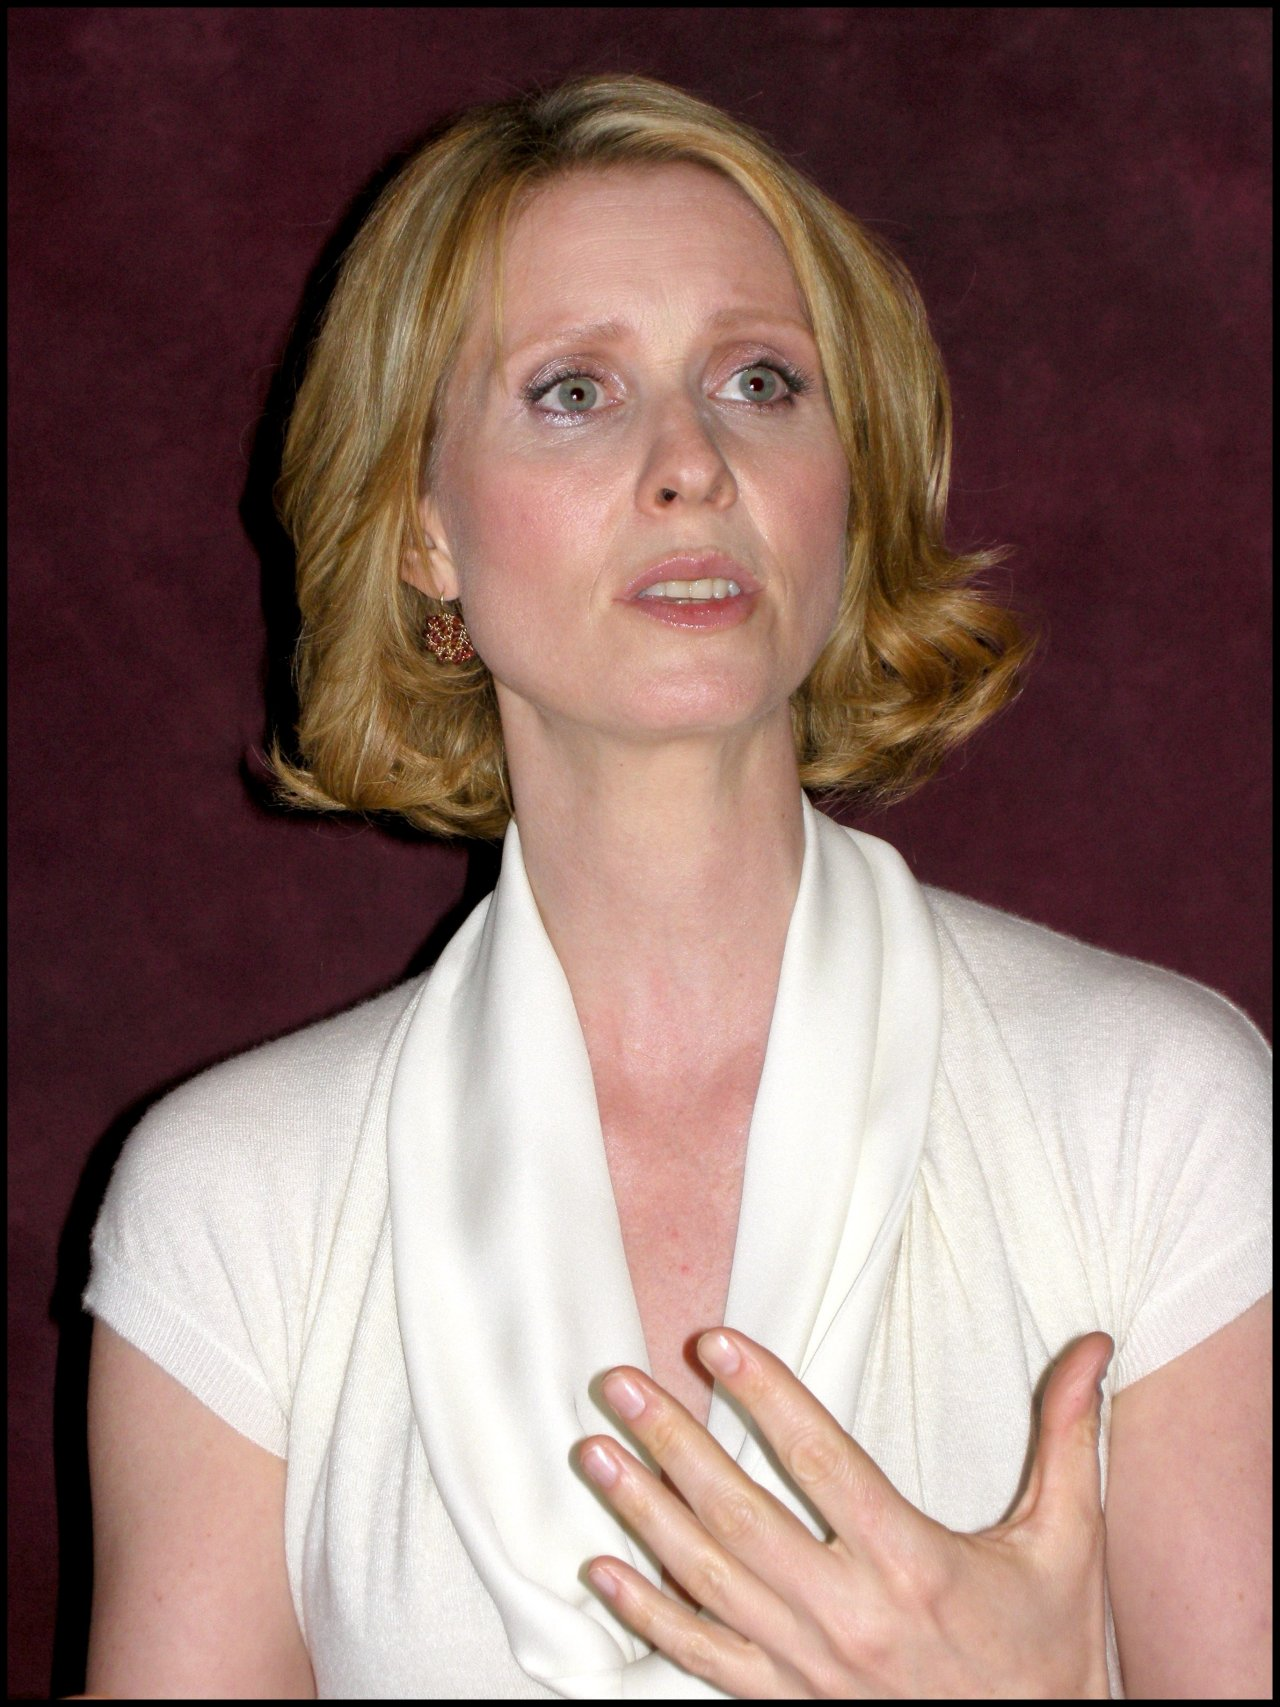 cynthia nixon wallpaper - photo #1